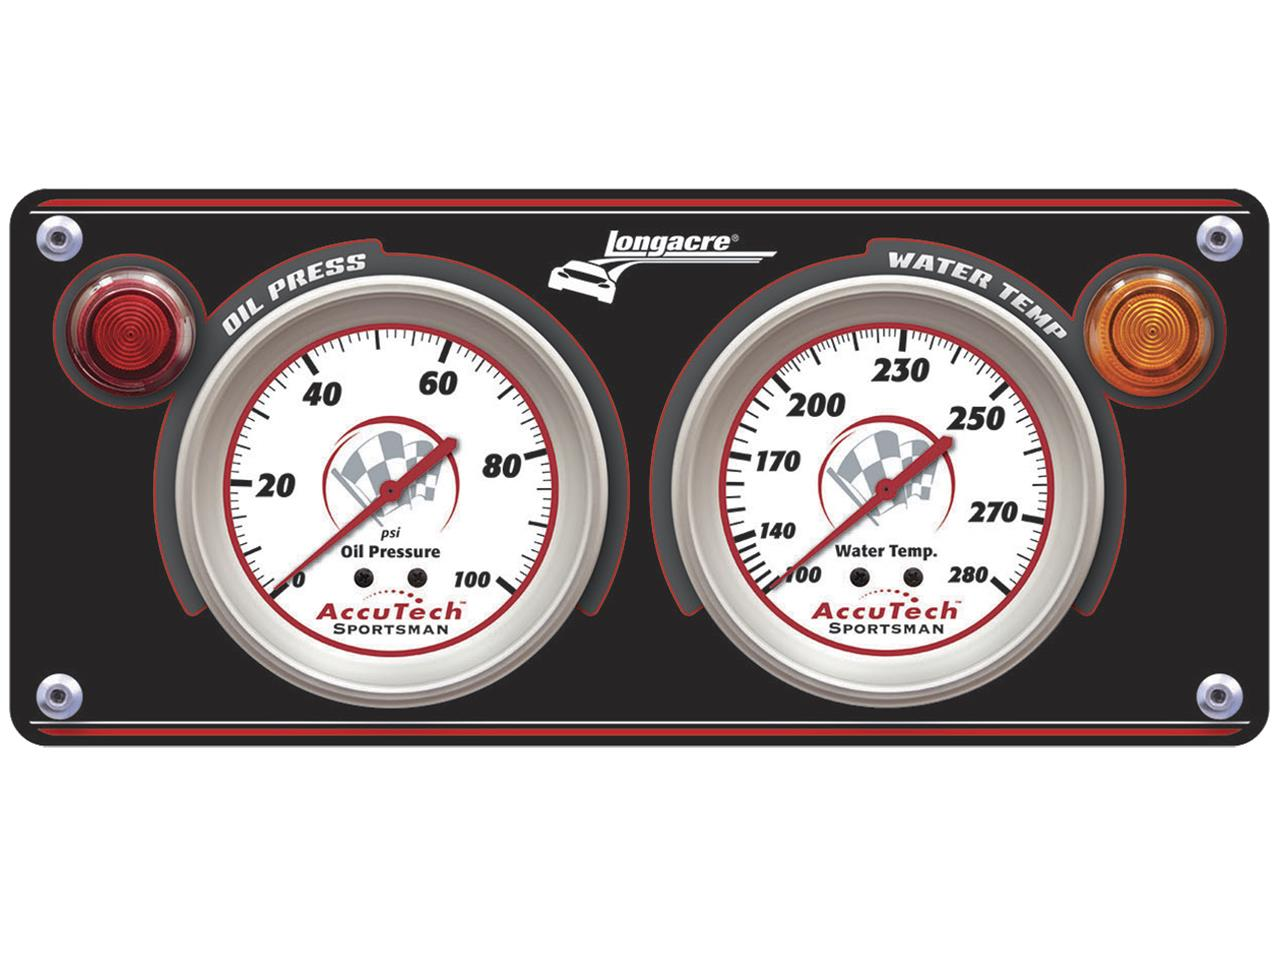 Longacre Sportsman 2 Gauge Panel - (OP/WT)